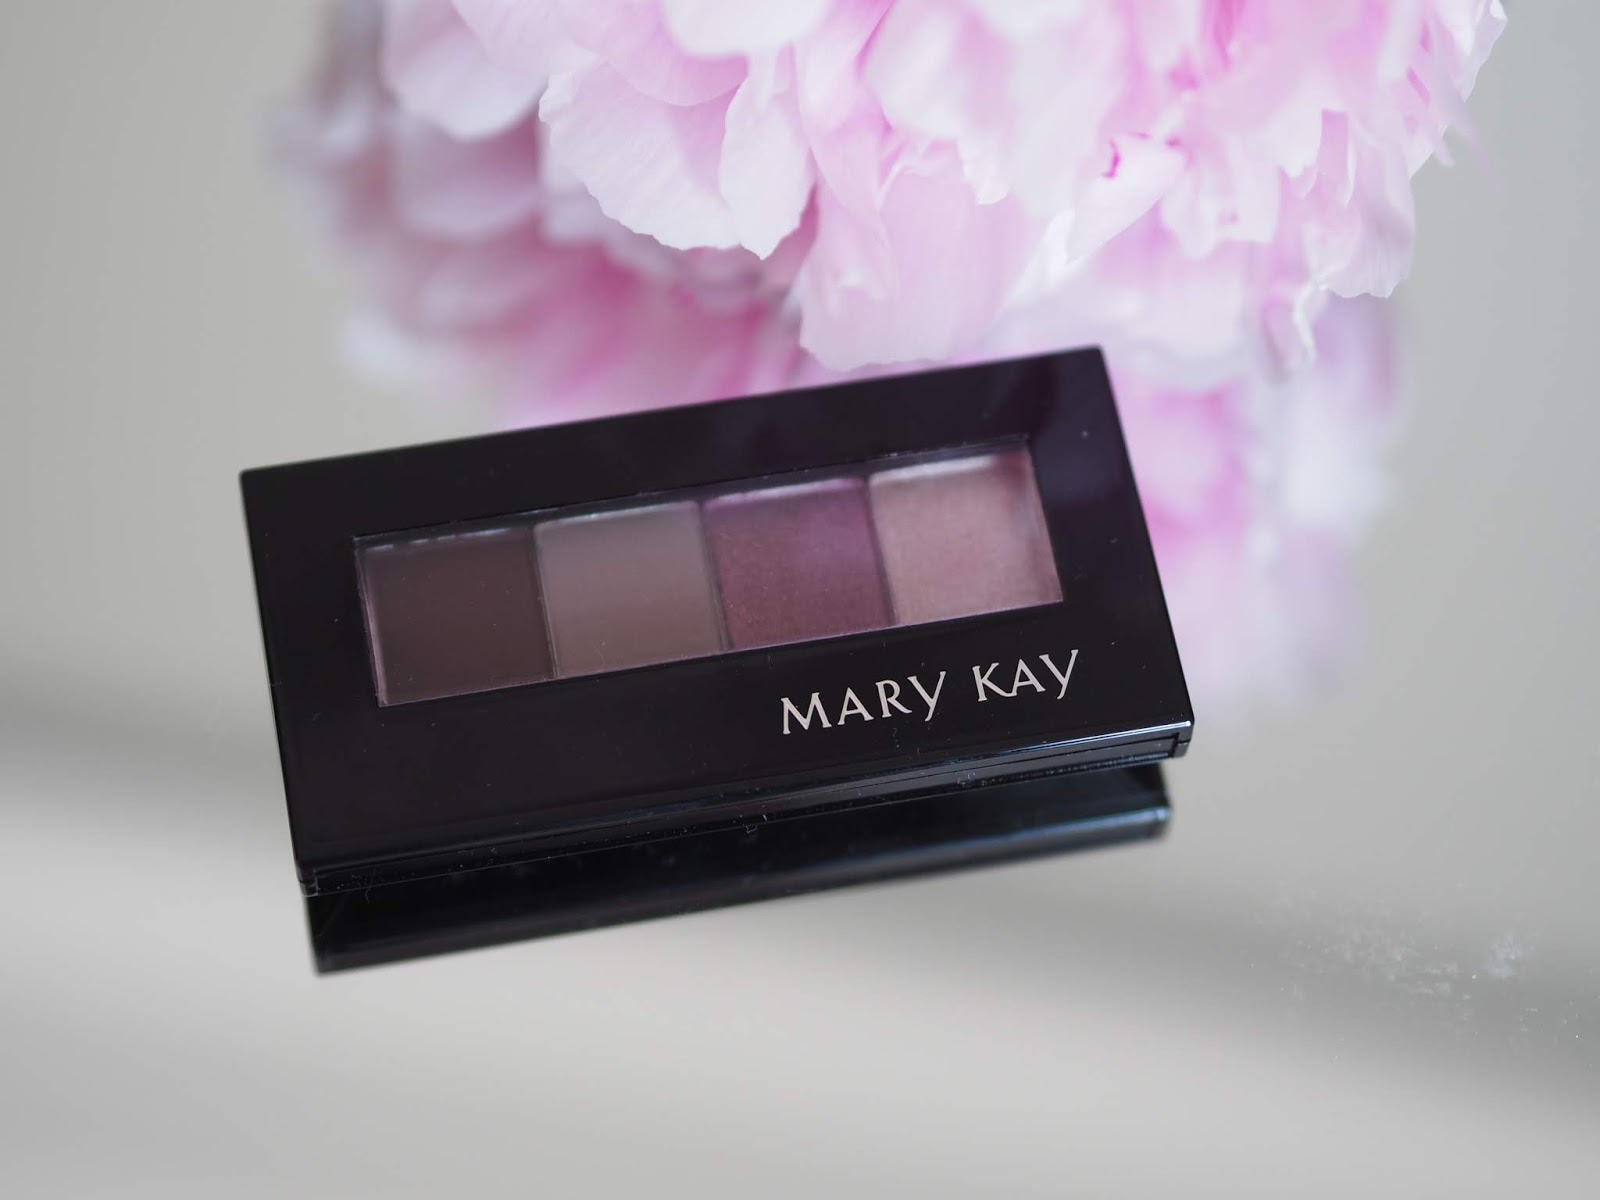 Mary Kay Lipstick in Pink Satin reviews in Lipstick